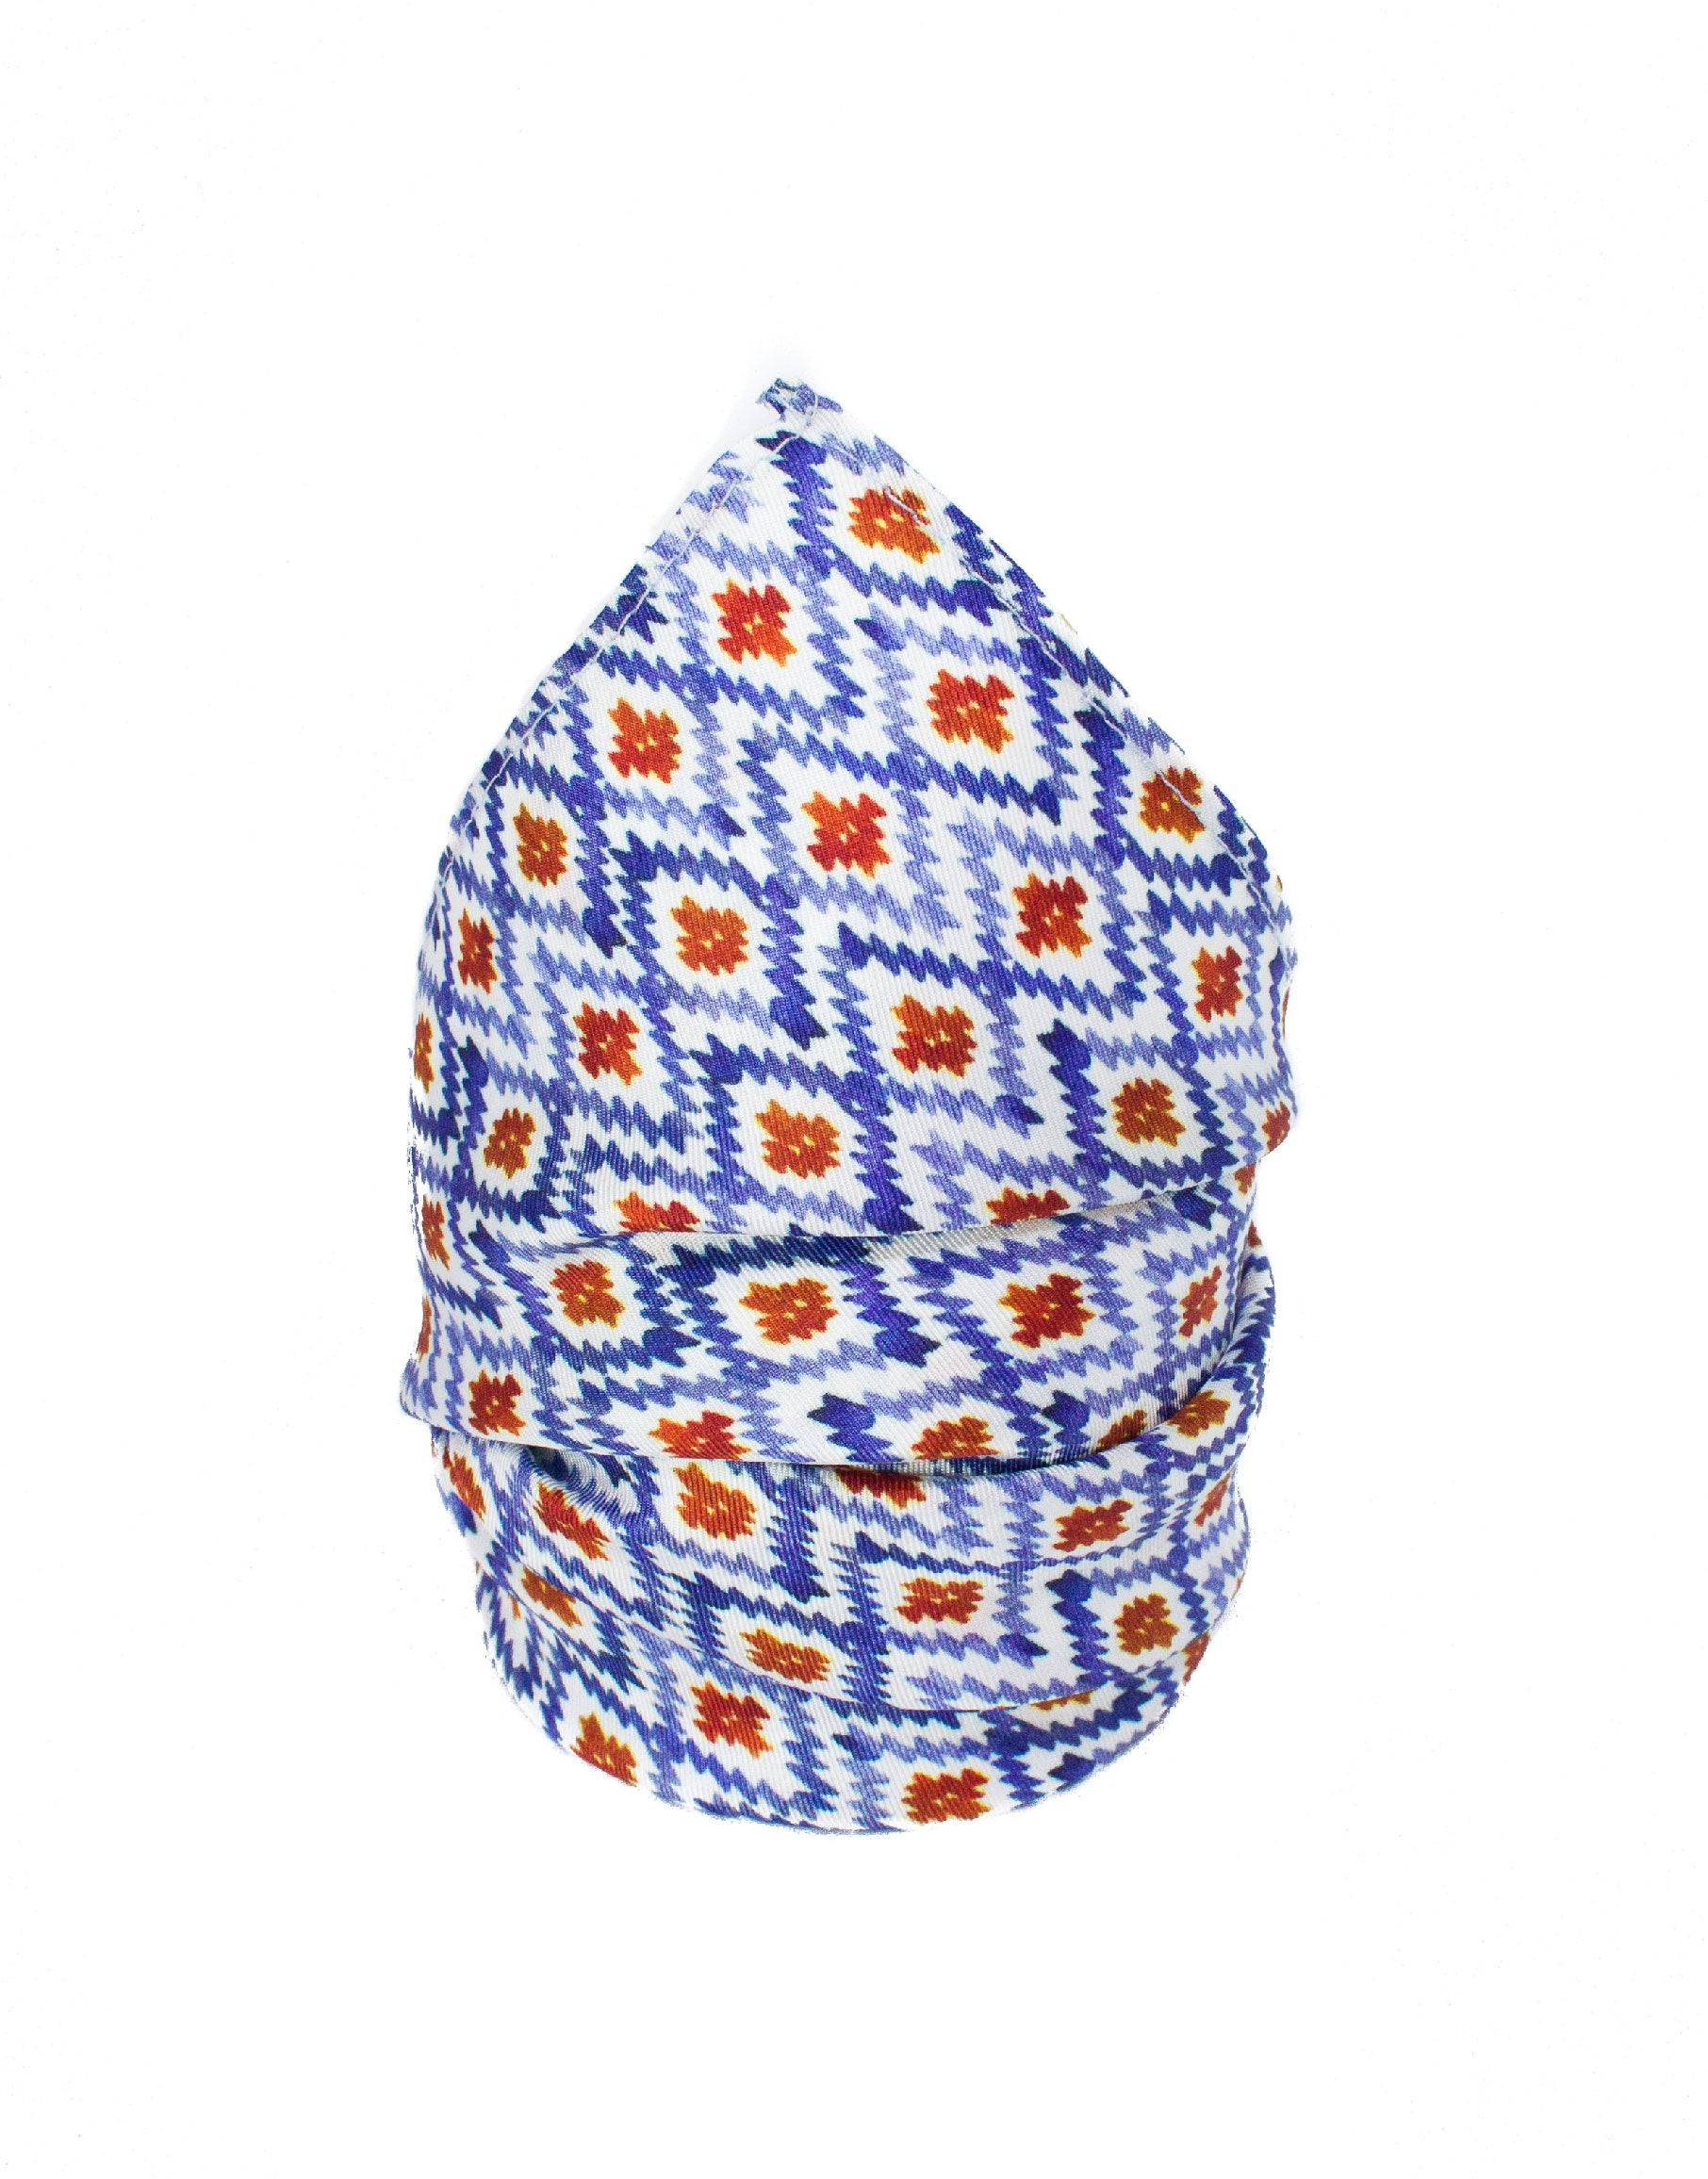 Blue, white and red men's pocket square accessory